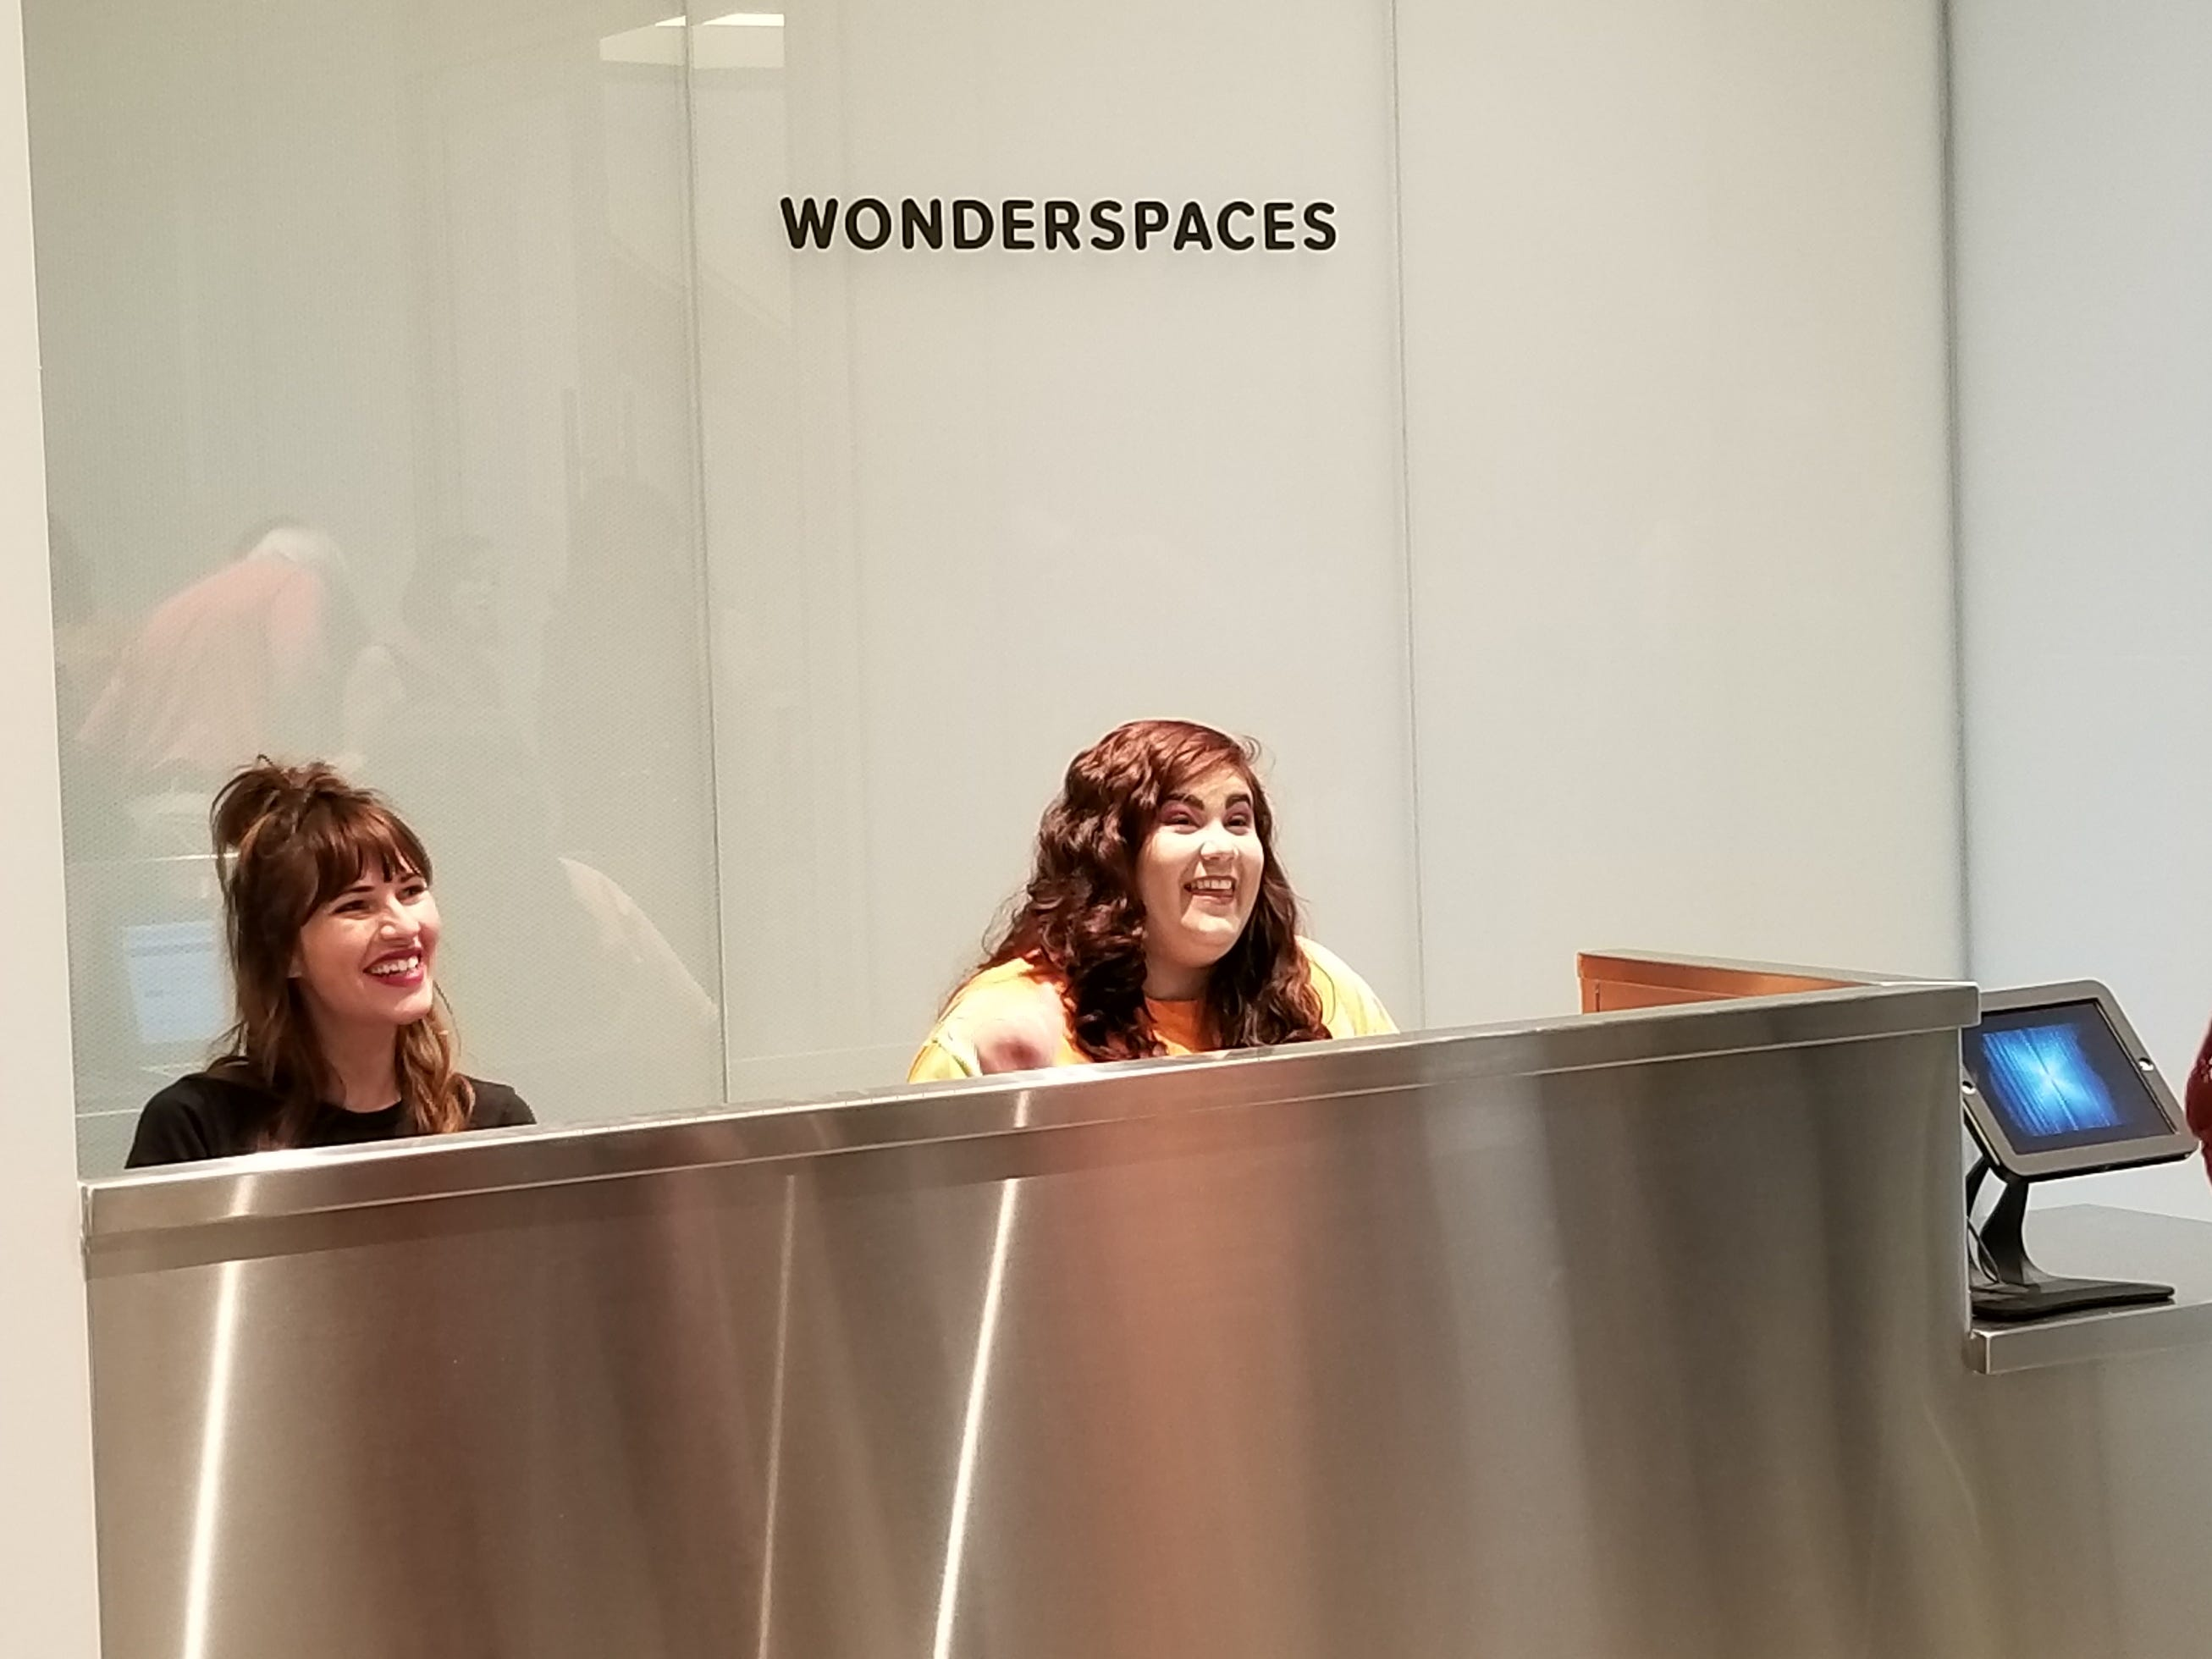 """Wonderspaces Arizona opened inside the Scottsdale Fashion Square mall on Friday, April 5, 2019, with a show titled """"Point of View,"""" featuring immersive installations that visitors can interact with."""